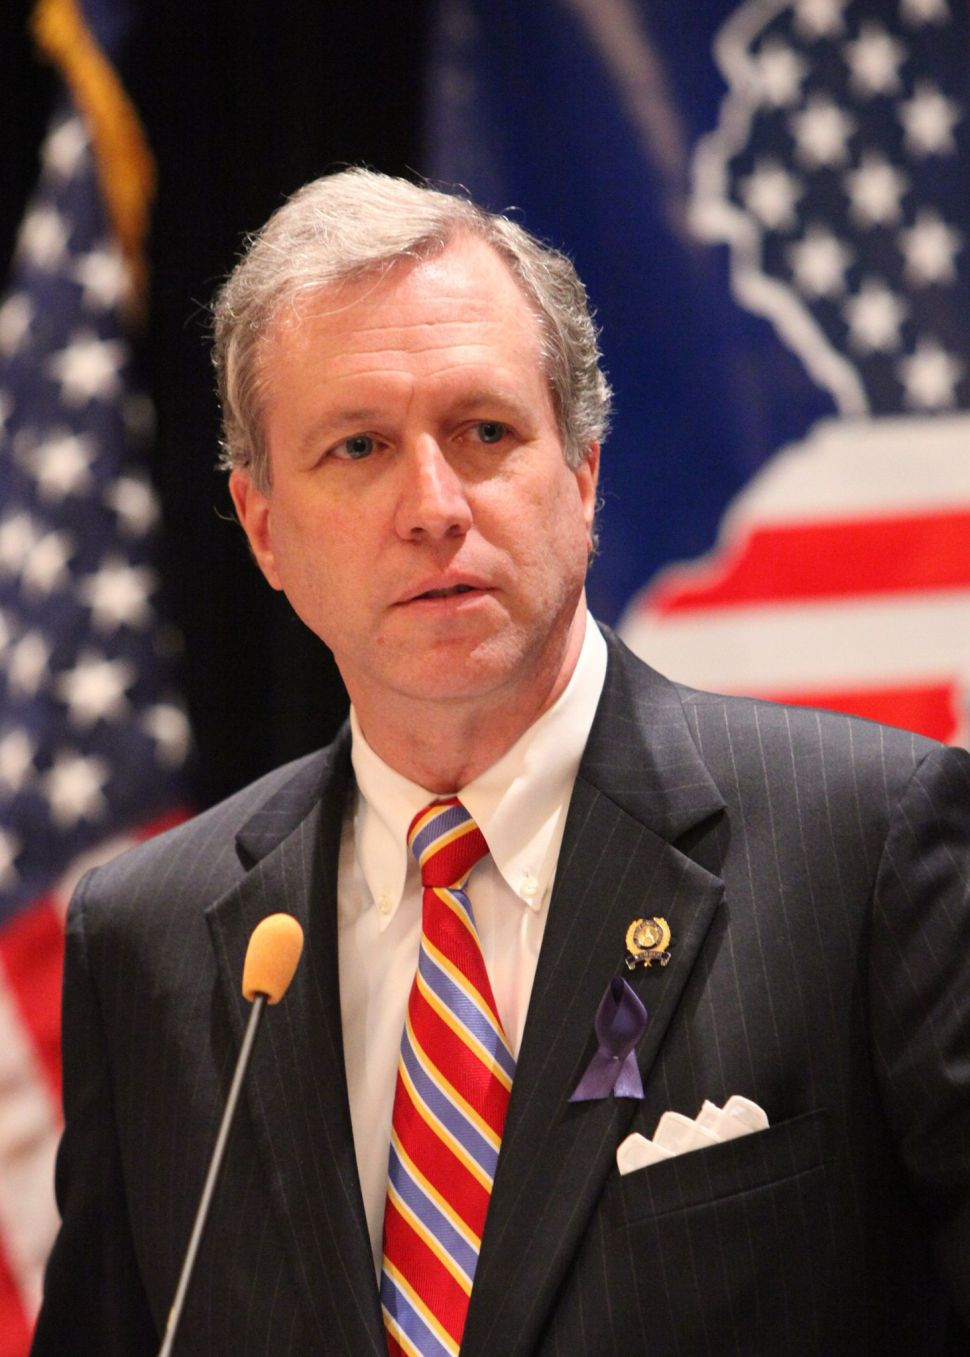 Breaking: Wisniewski Qualifies for Matching Funds in NJ Gov Bid